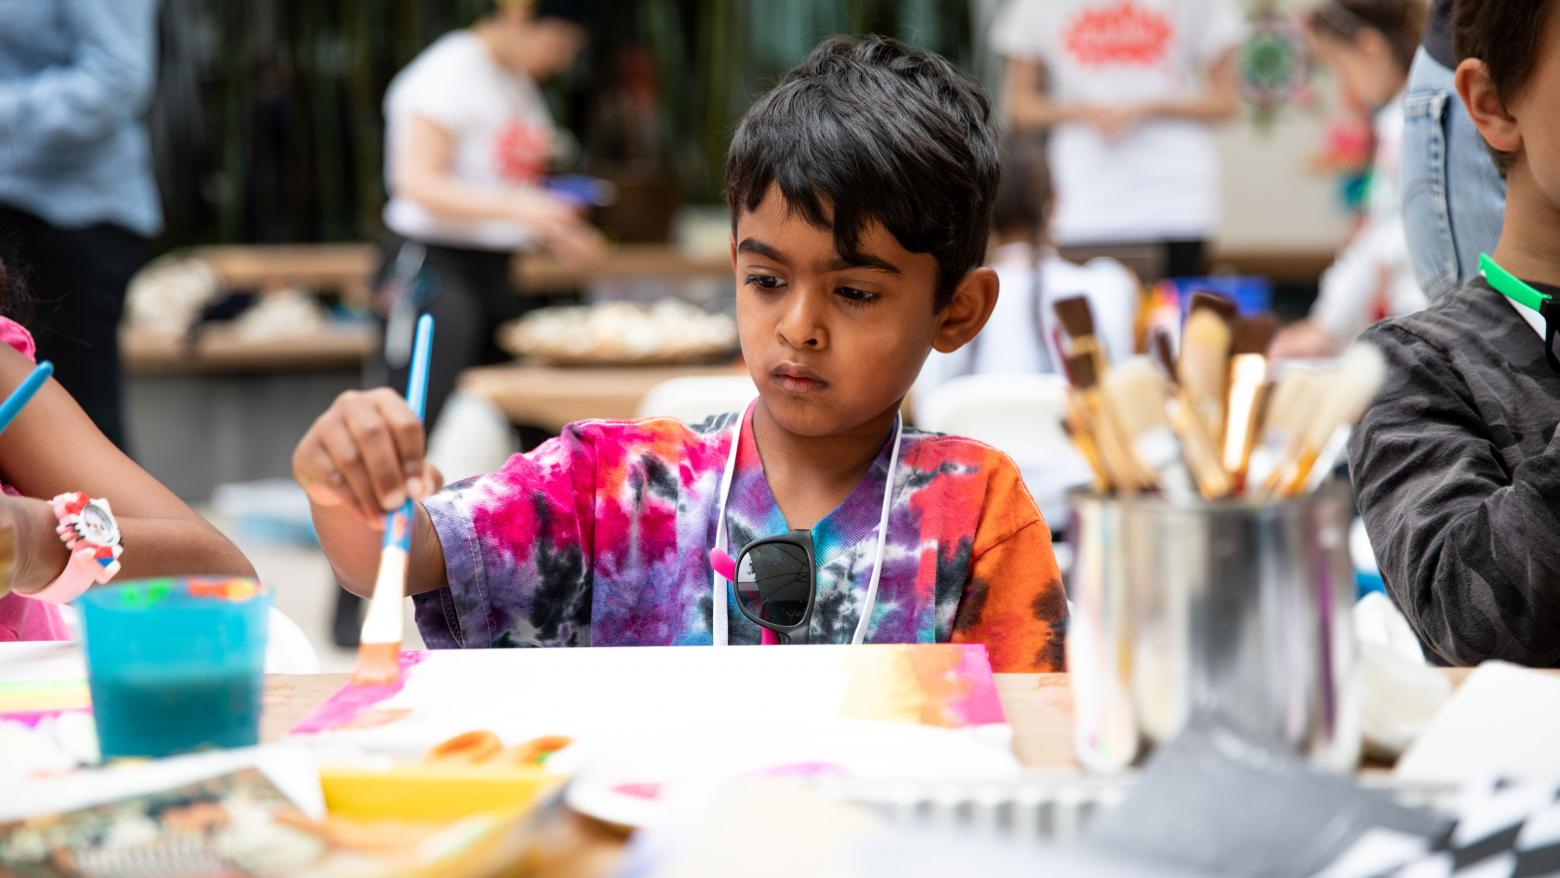 Kids workshop at the Hammer Museum